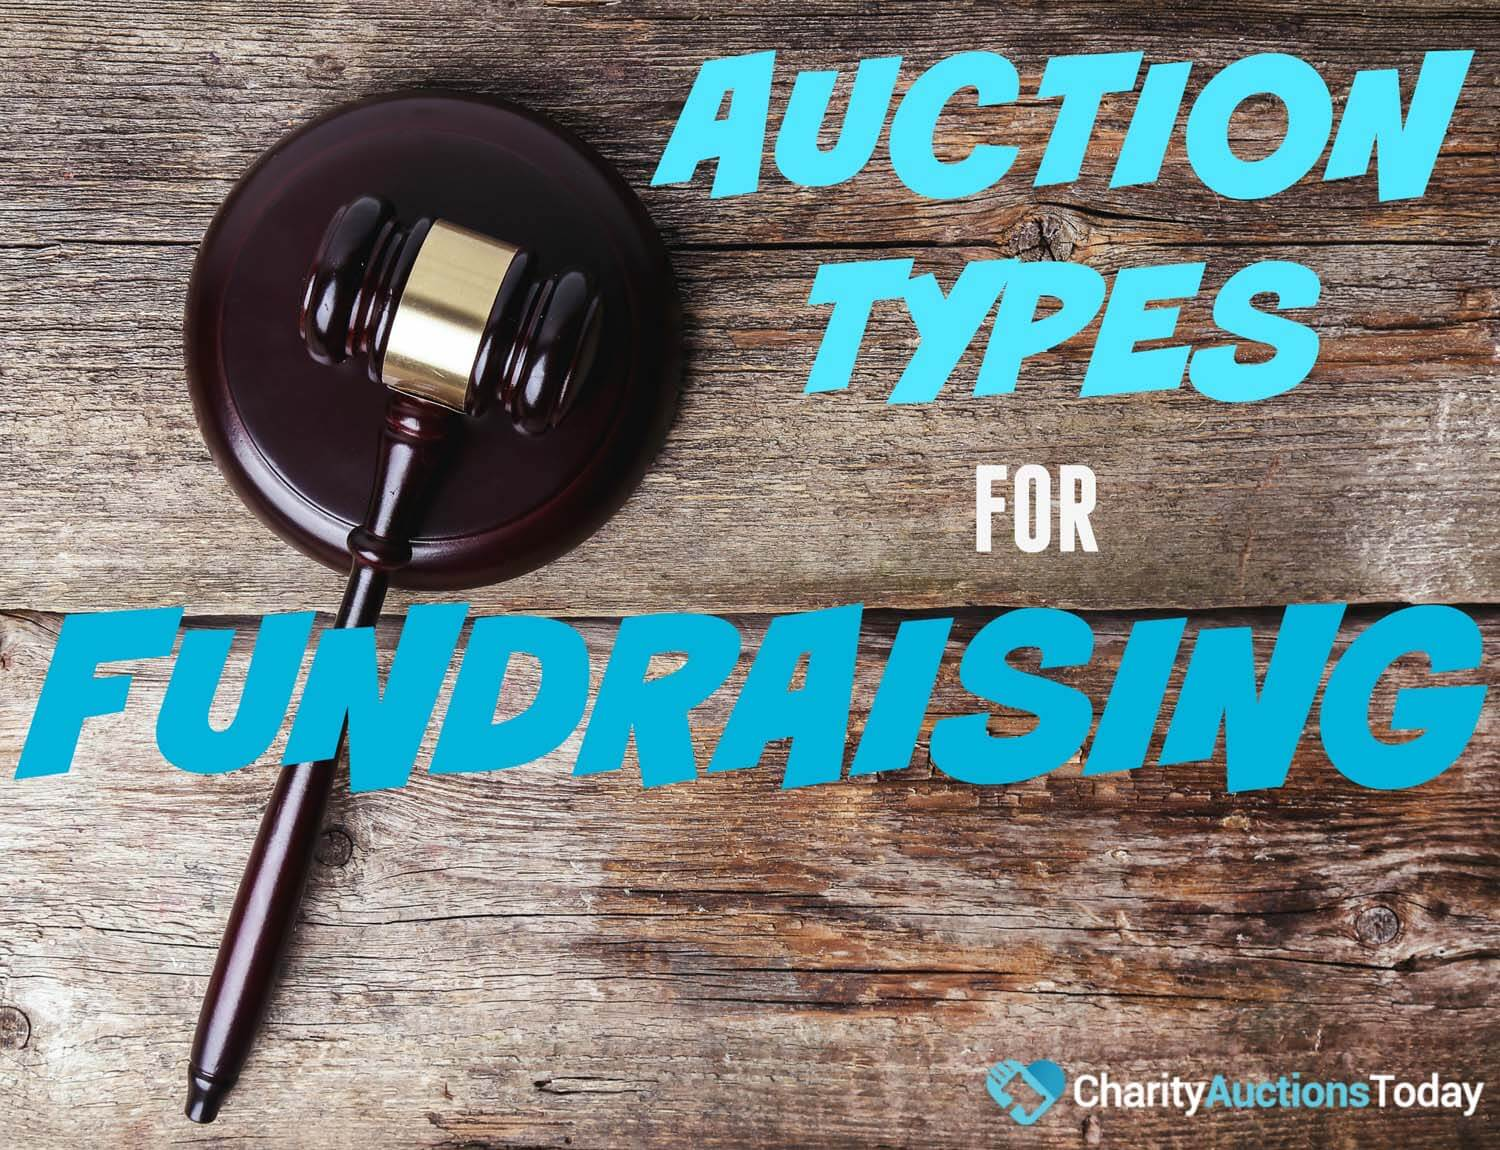 online-auctions-fundraising-ideas